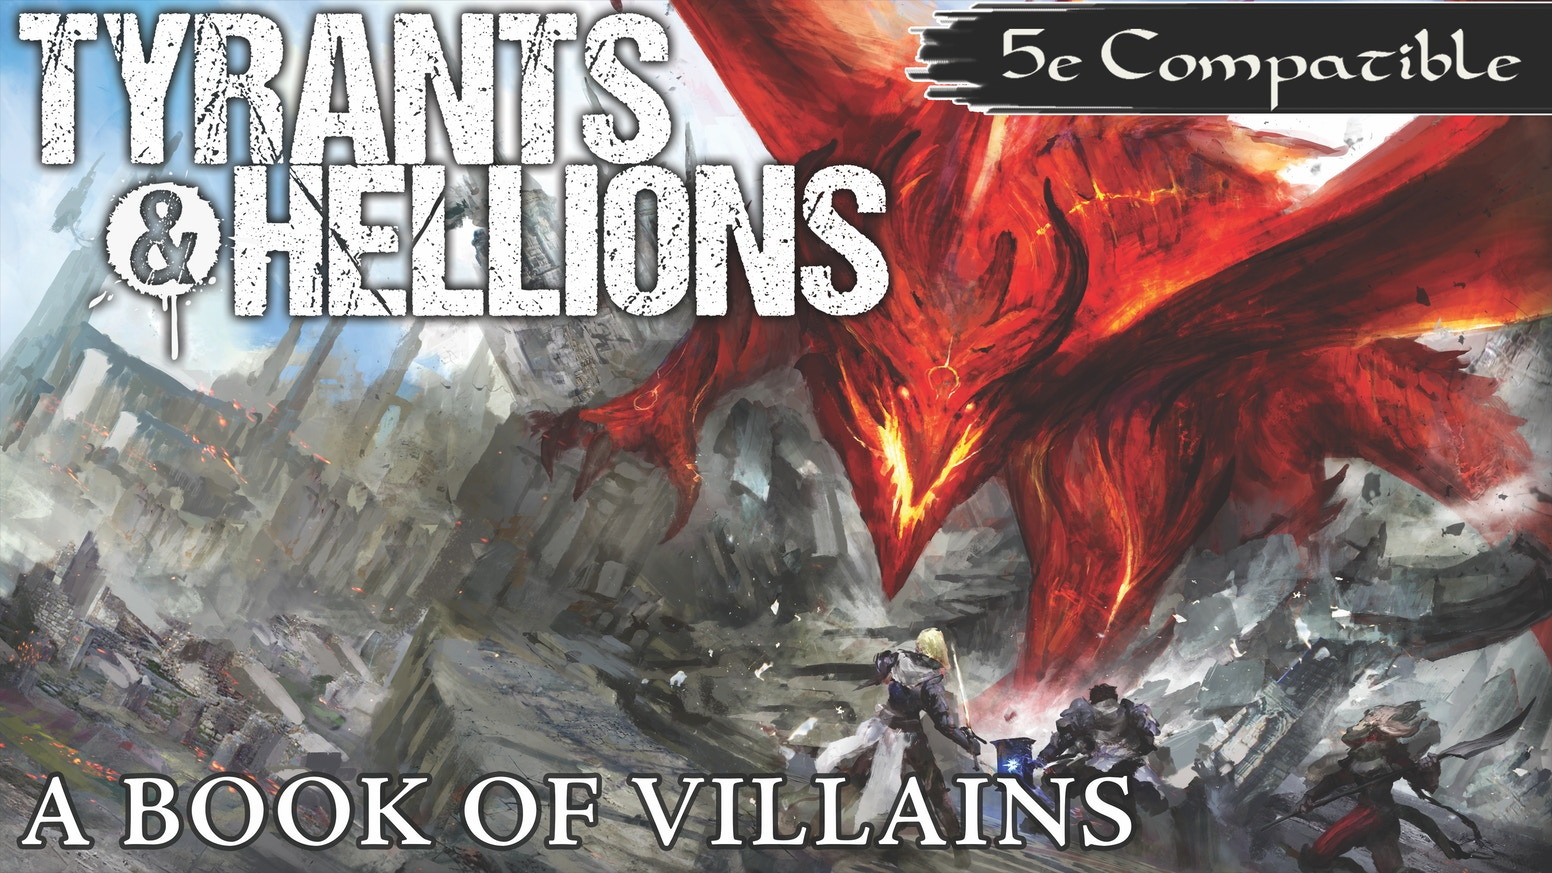 Stories need villains. Tyrants & Hellions delivers. Make your game an experience your friends will never forget.